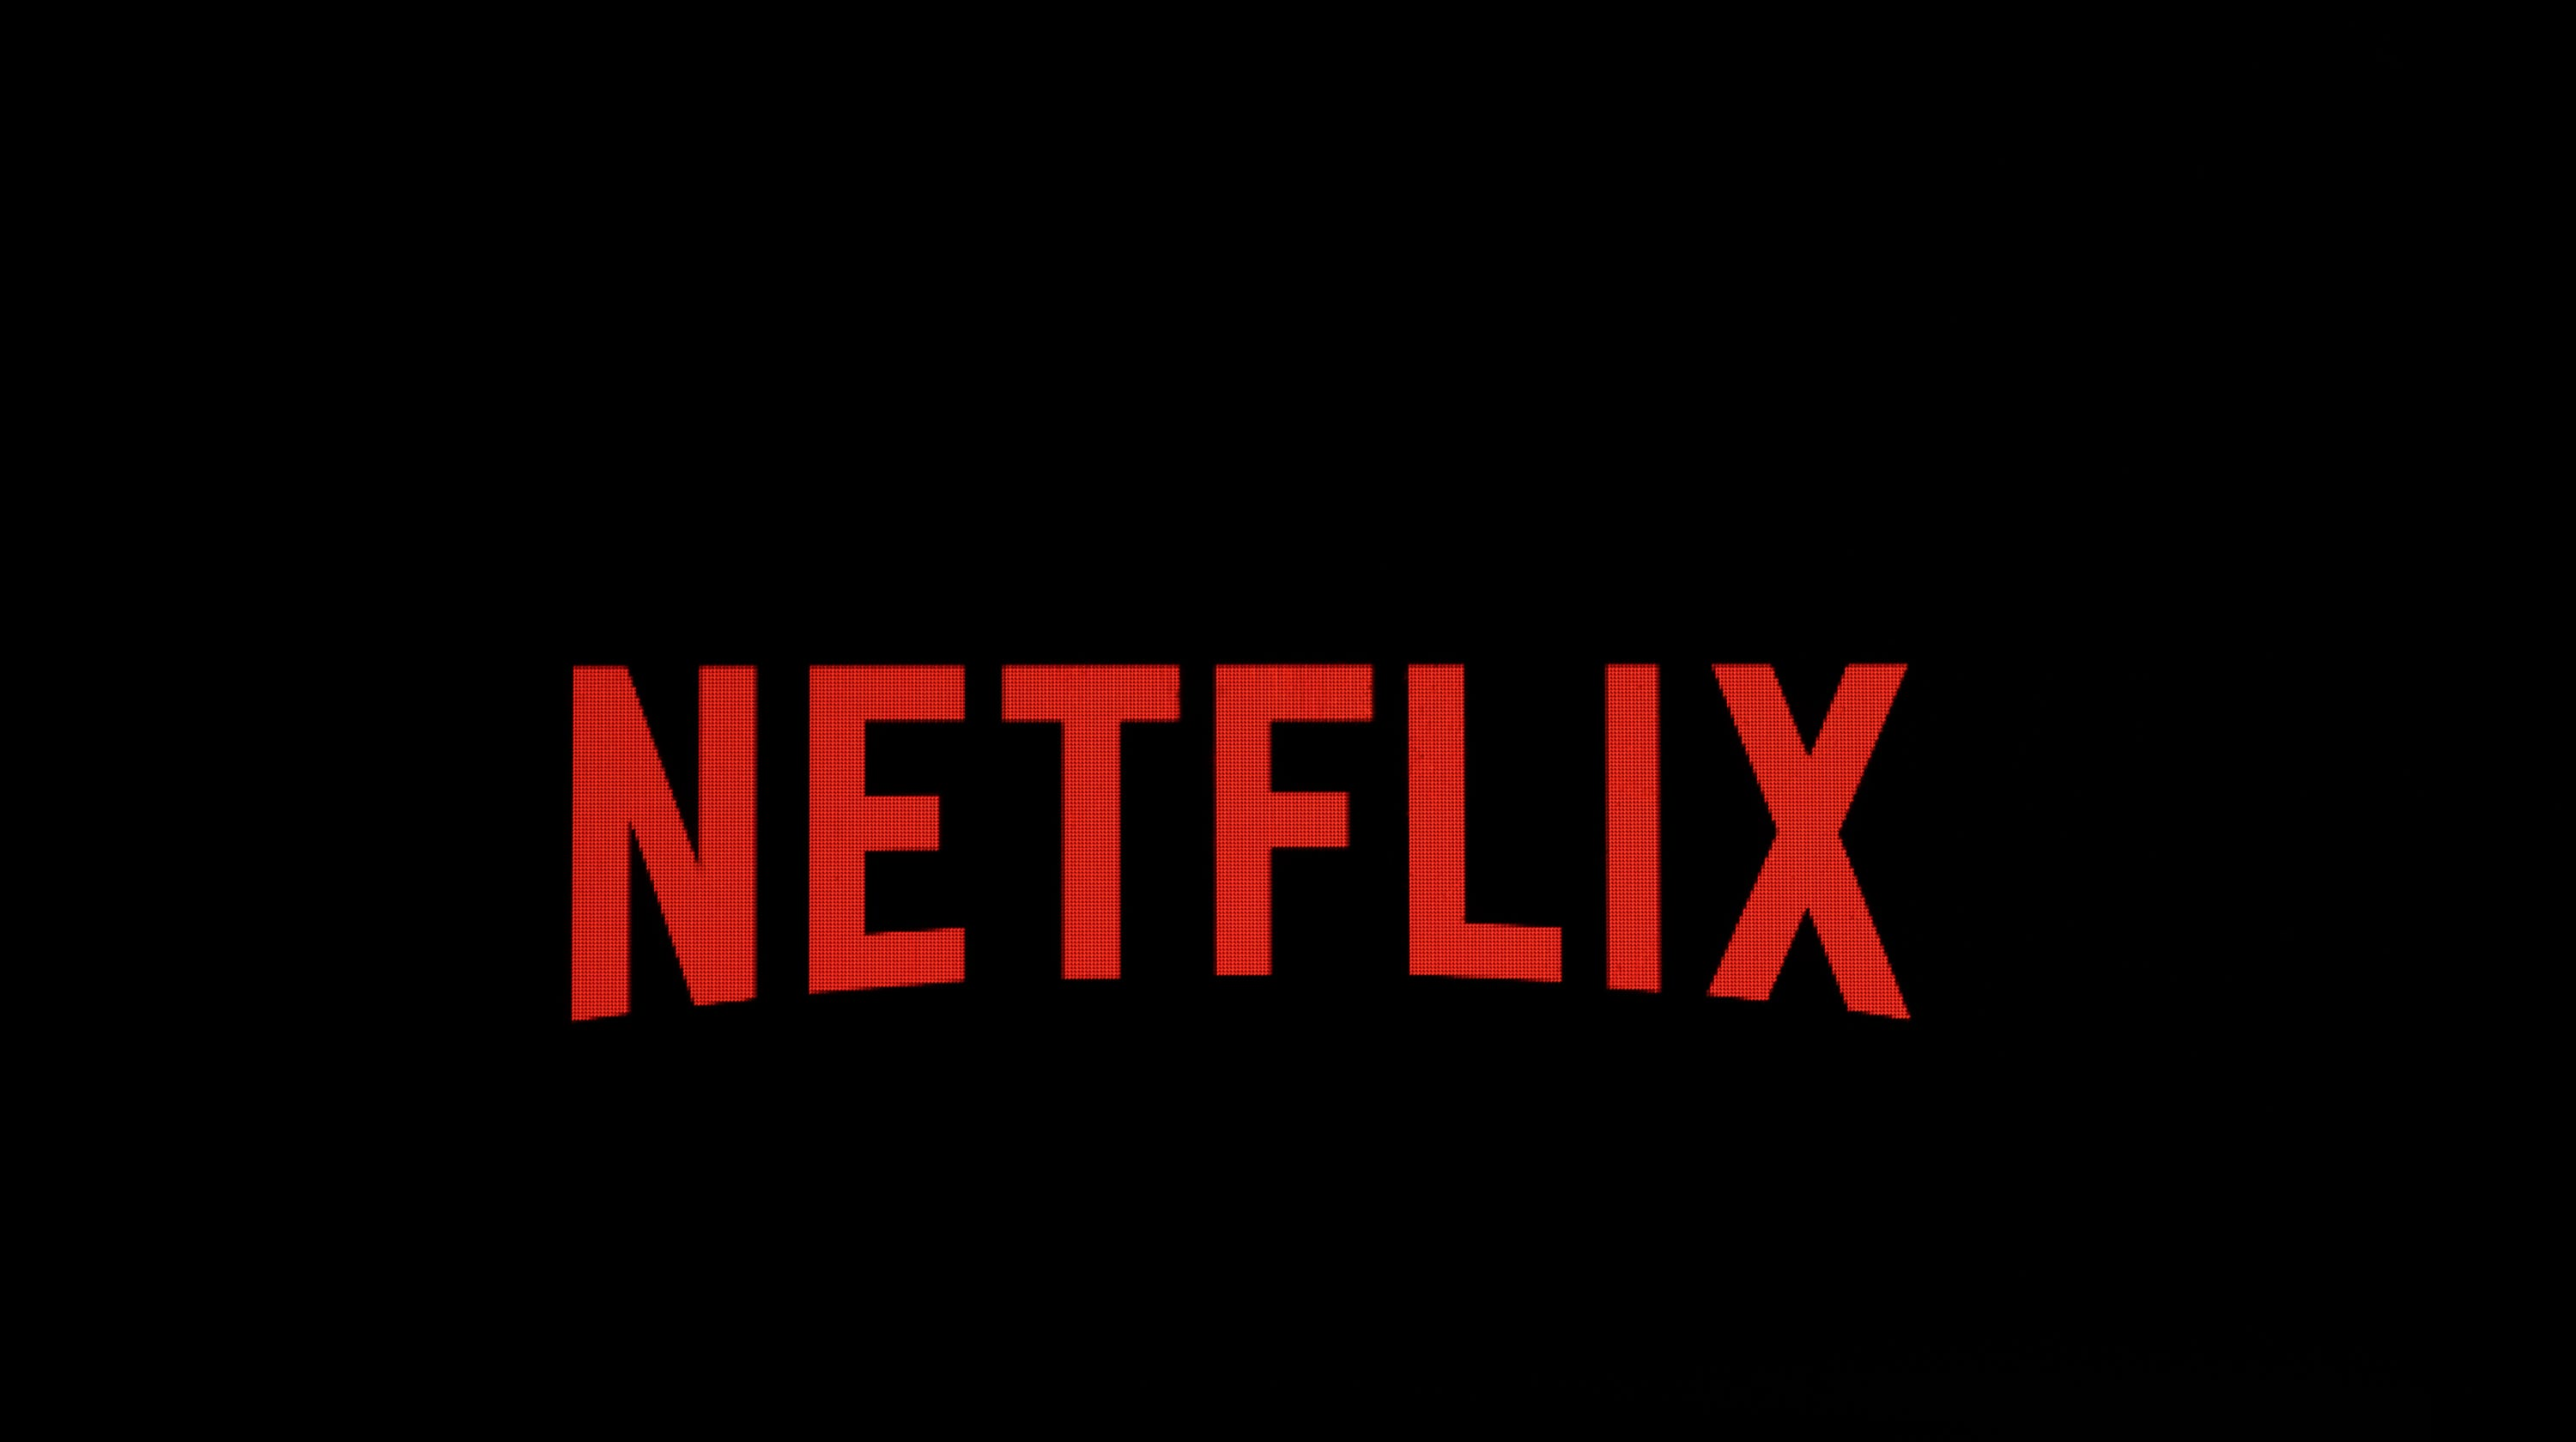 This is the one thing Netflix should do better